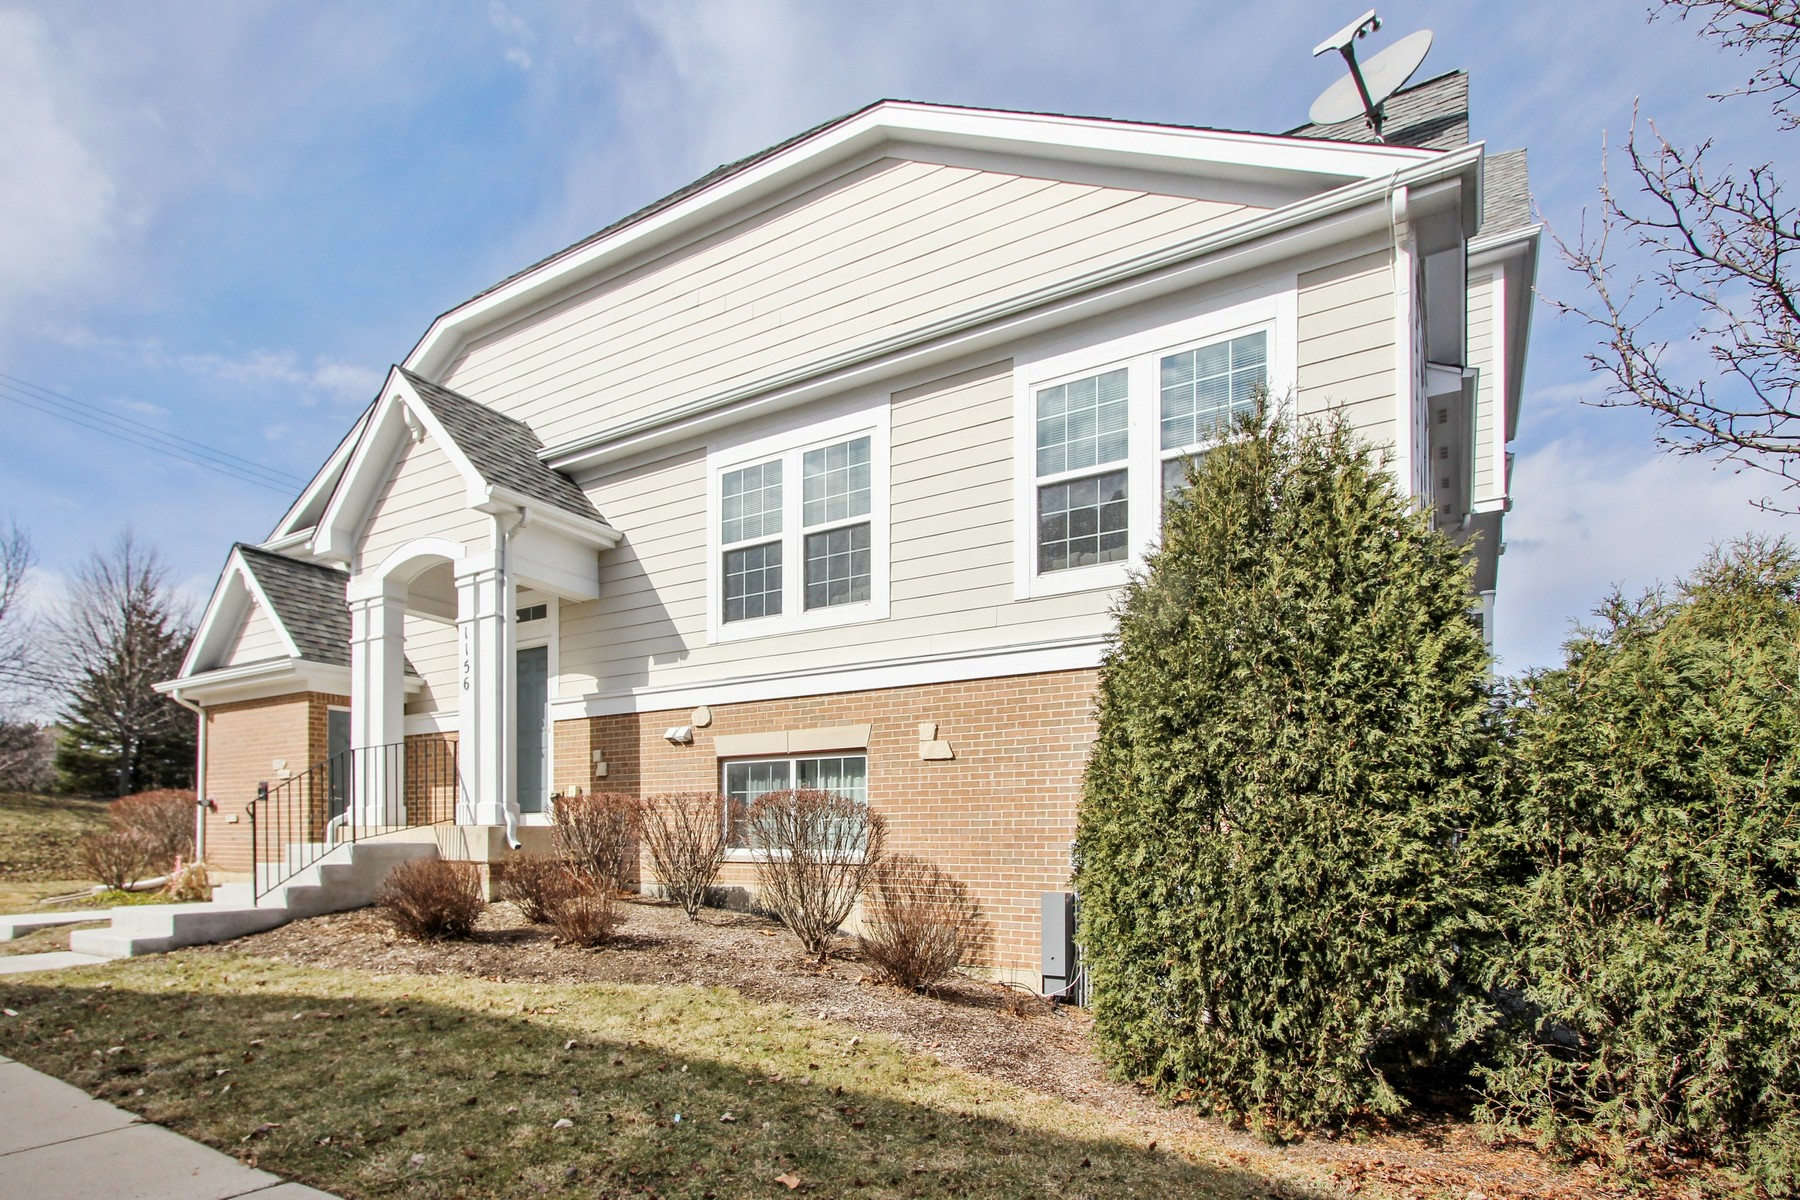 Townhouse for Sale at Airy Lake Zurich Town Home 1156 Jordan Circle, Lake Zurich, Illinois, 60047 United States